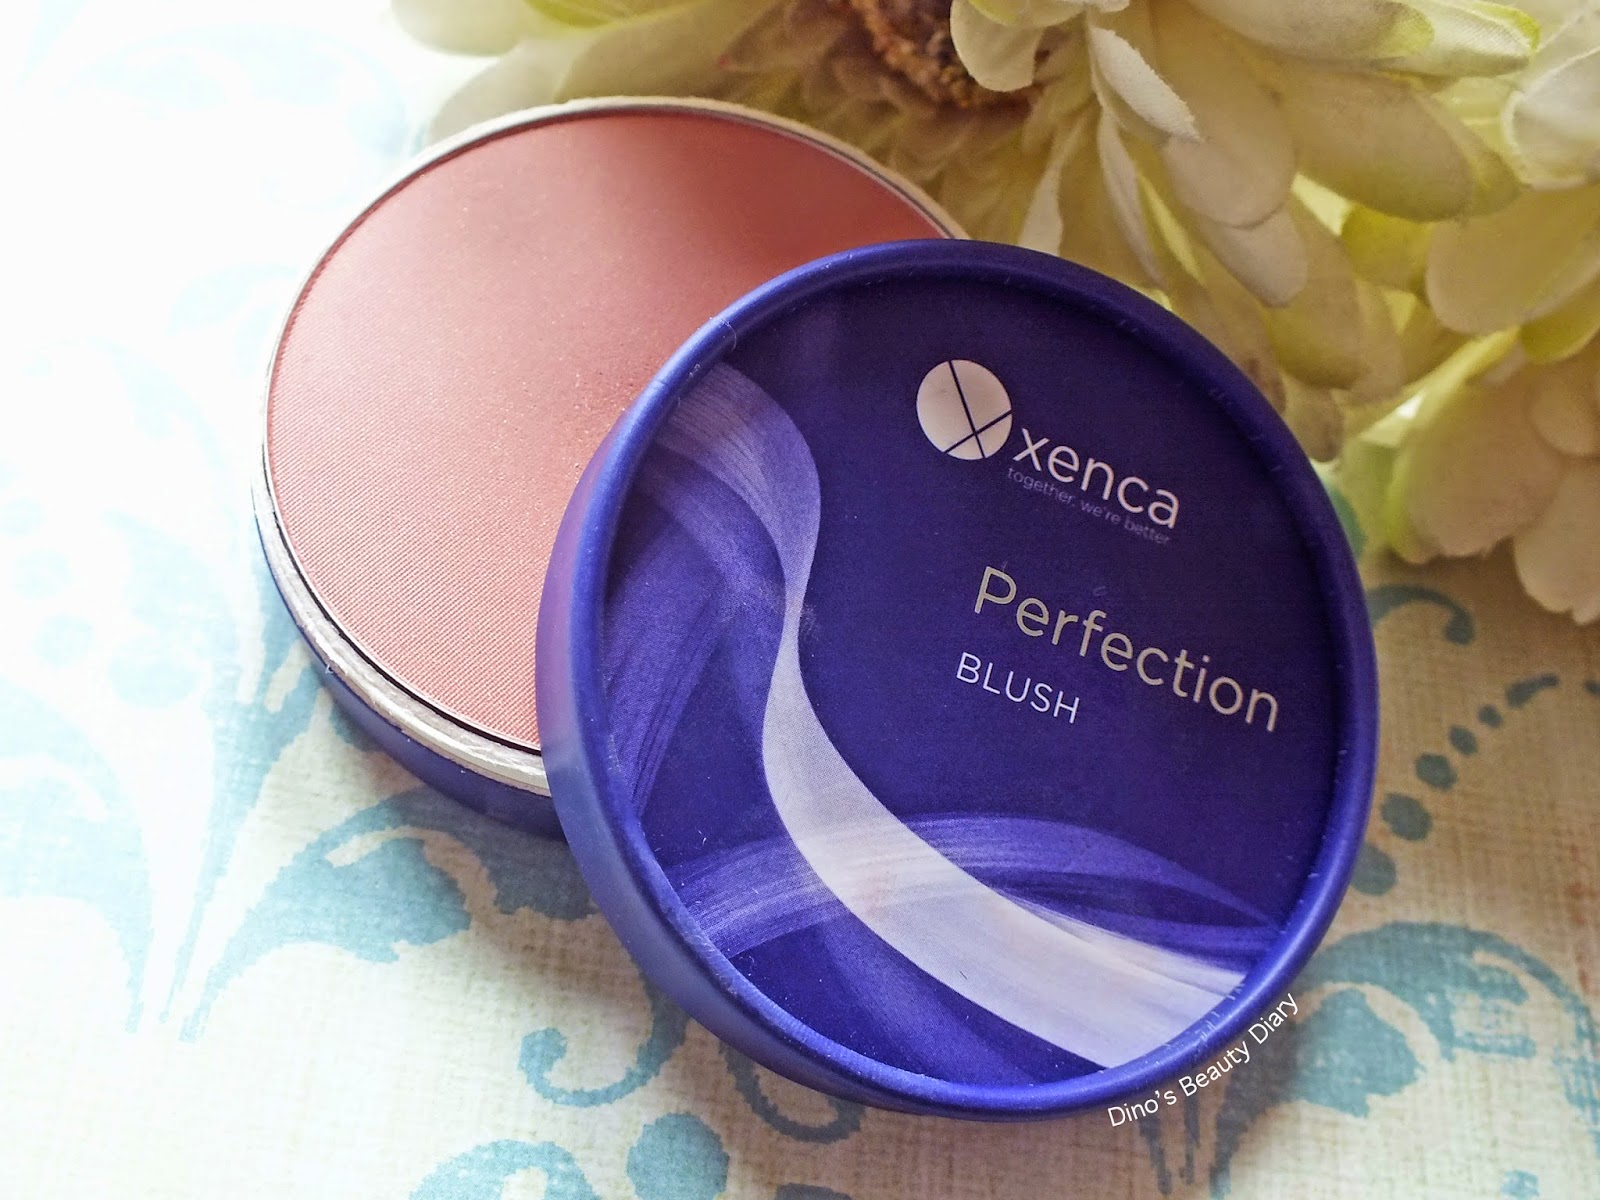 Dino's Beauty Diary - Make Up Review - Xenca Perfection Blush in 'Rose'